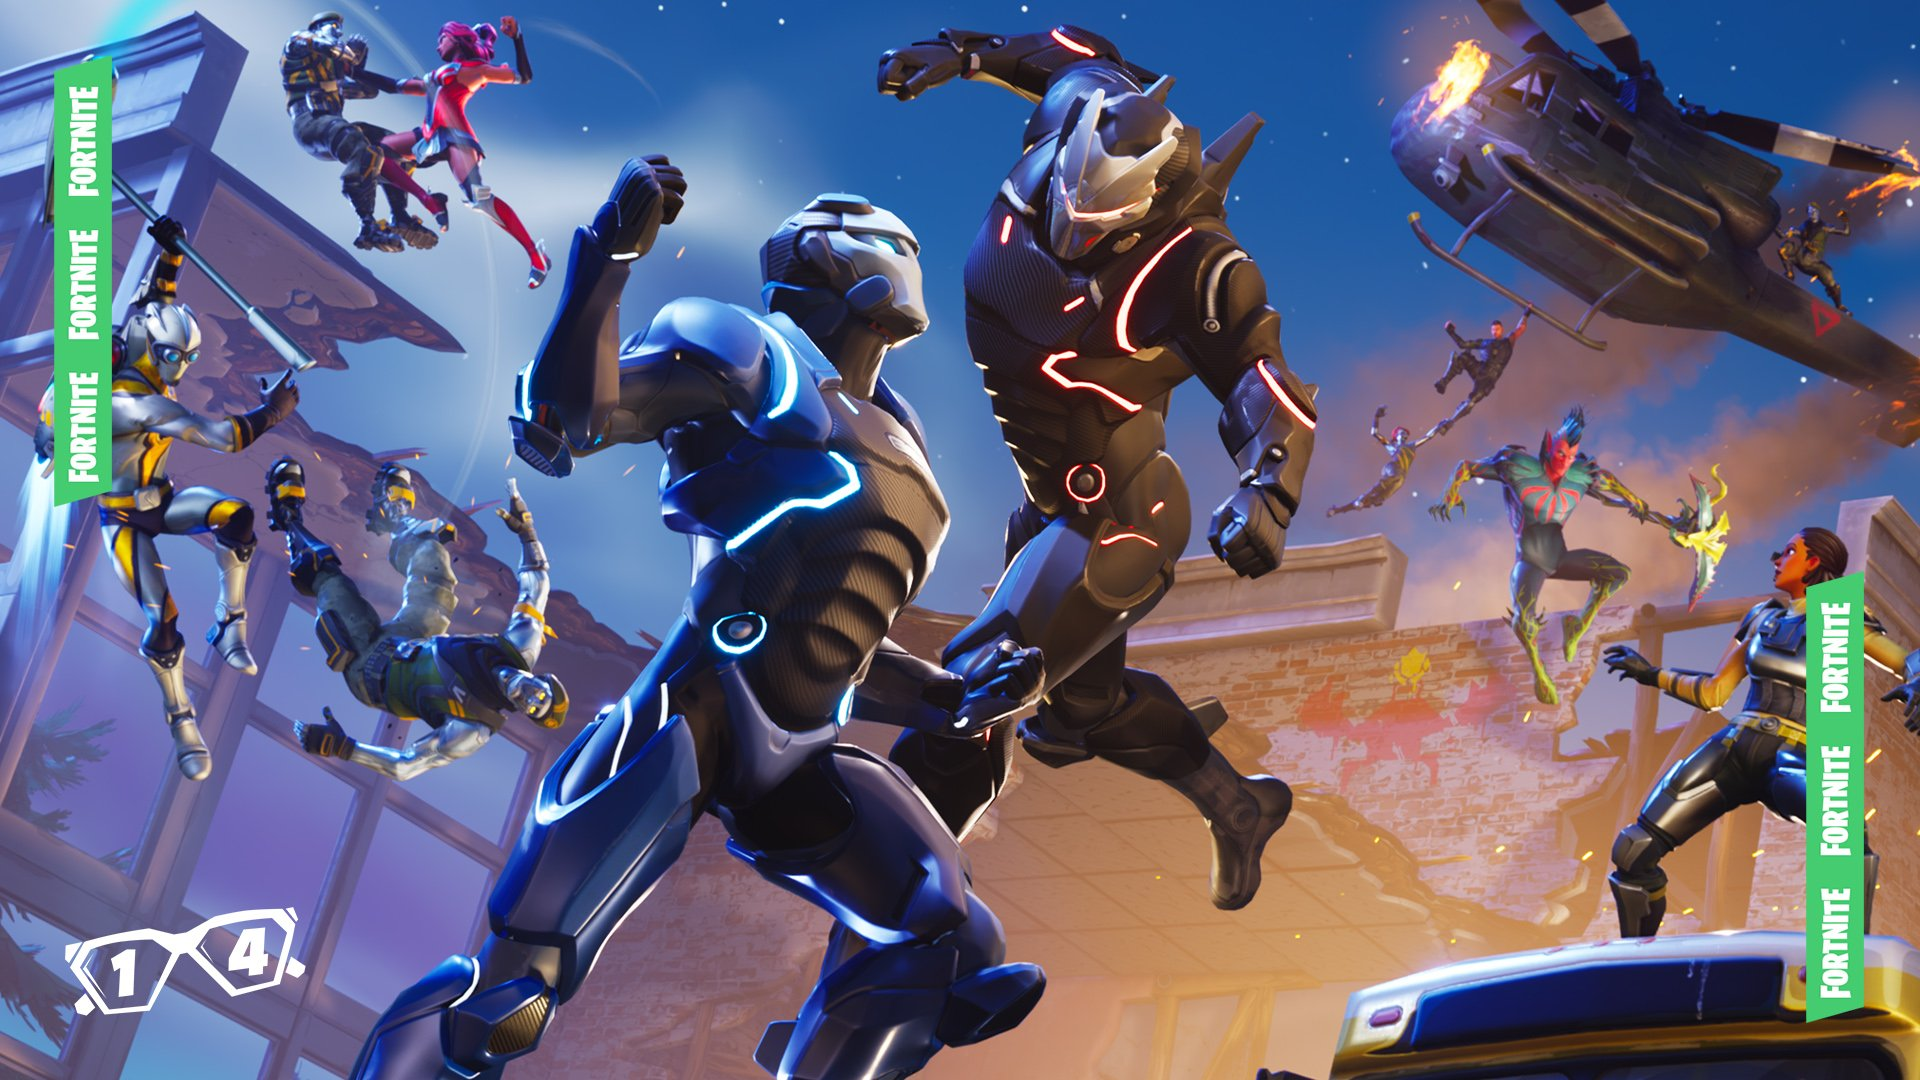 Fortnite World Cup pro is total champ about coming in last place in duos